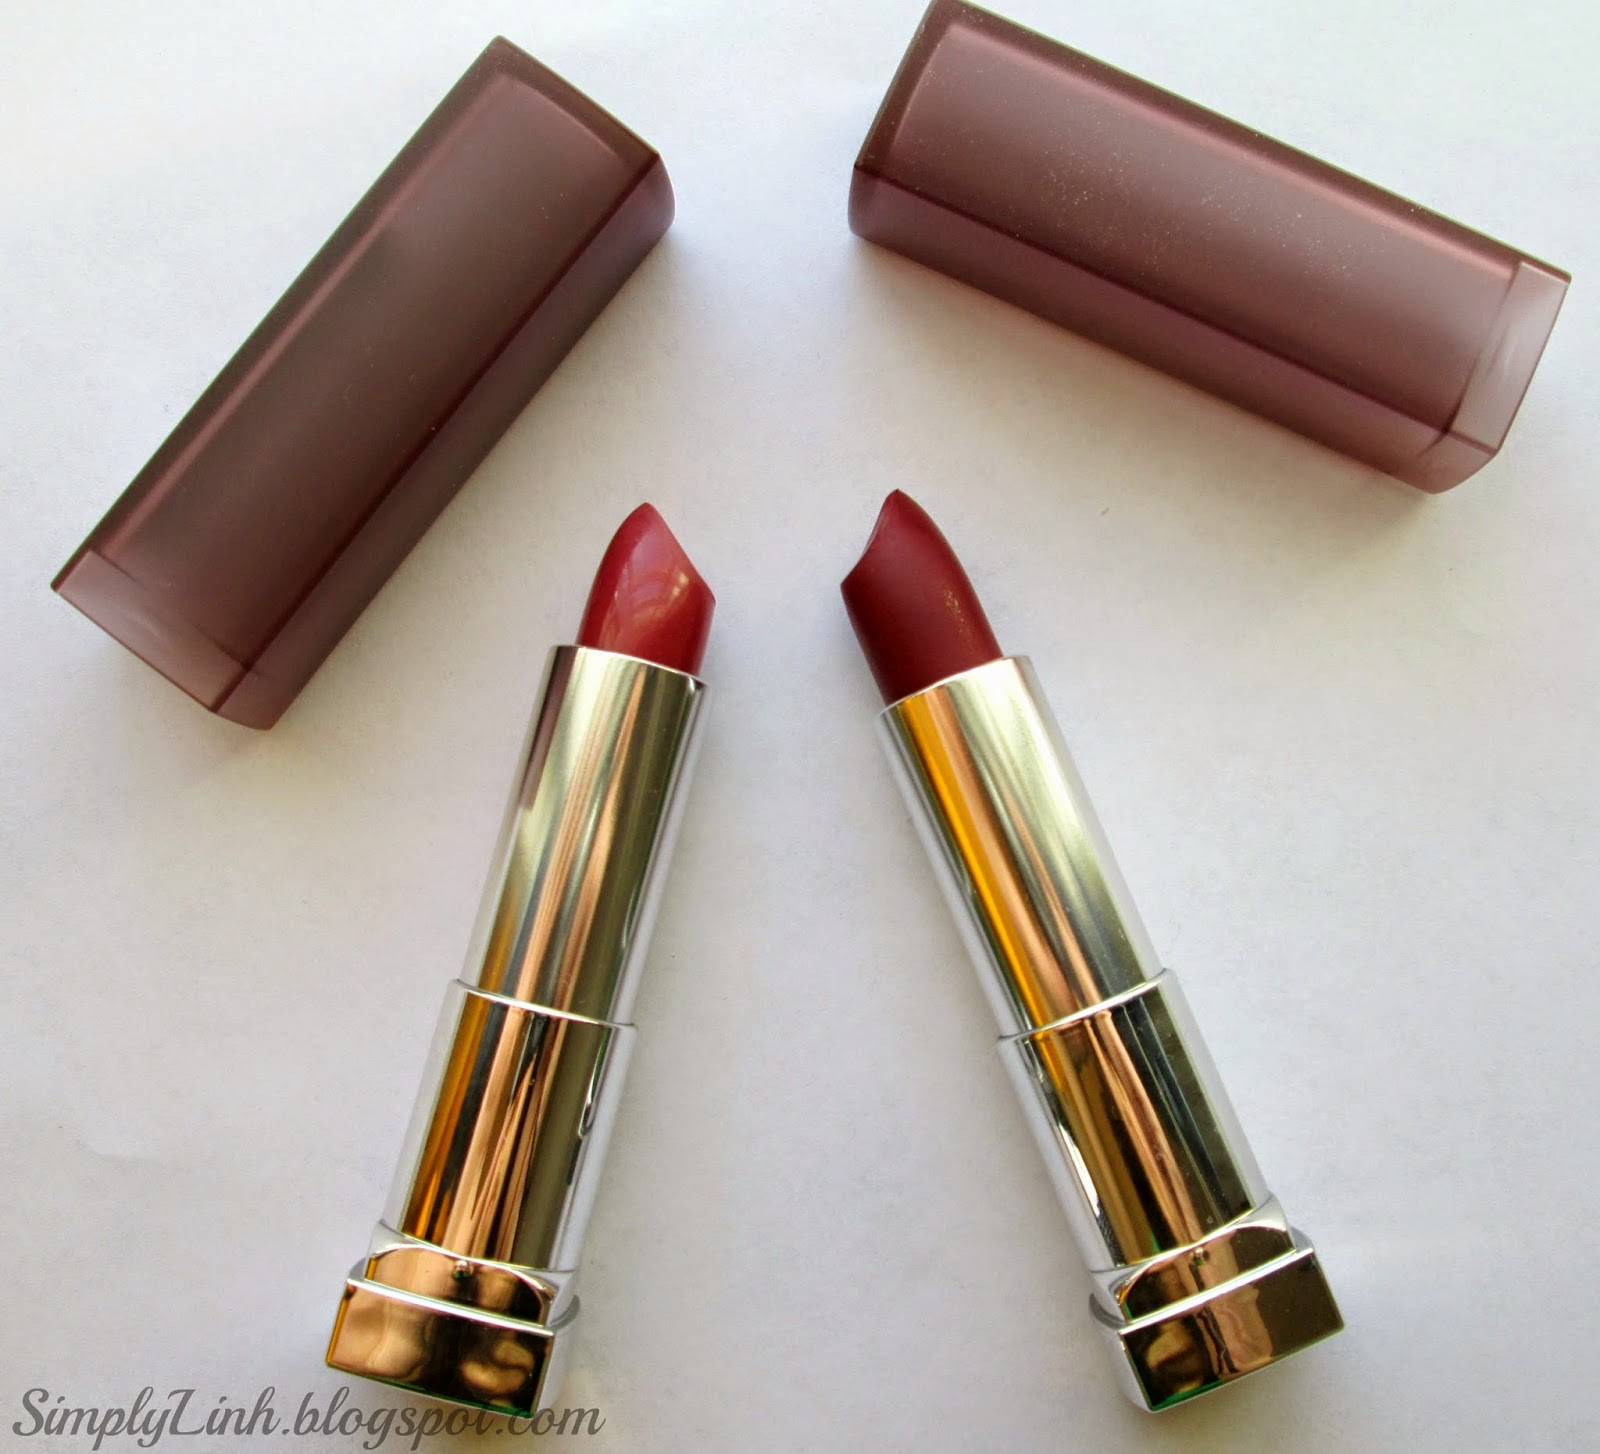 Maybelline Creamy Mattes Lipstick in 'Touch of Spice' and 'Divine Wine'